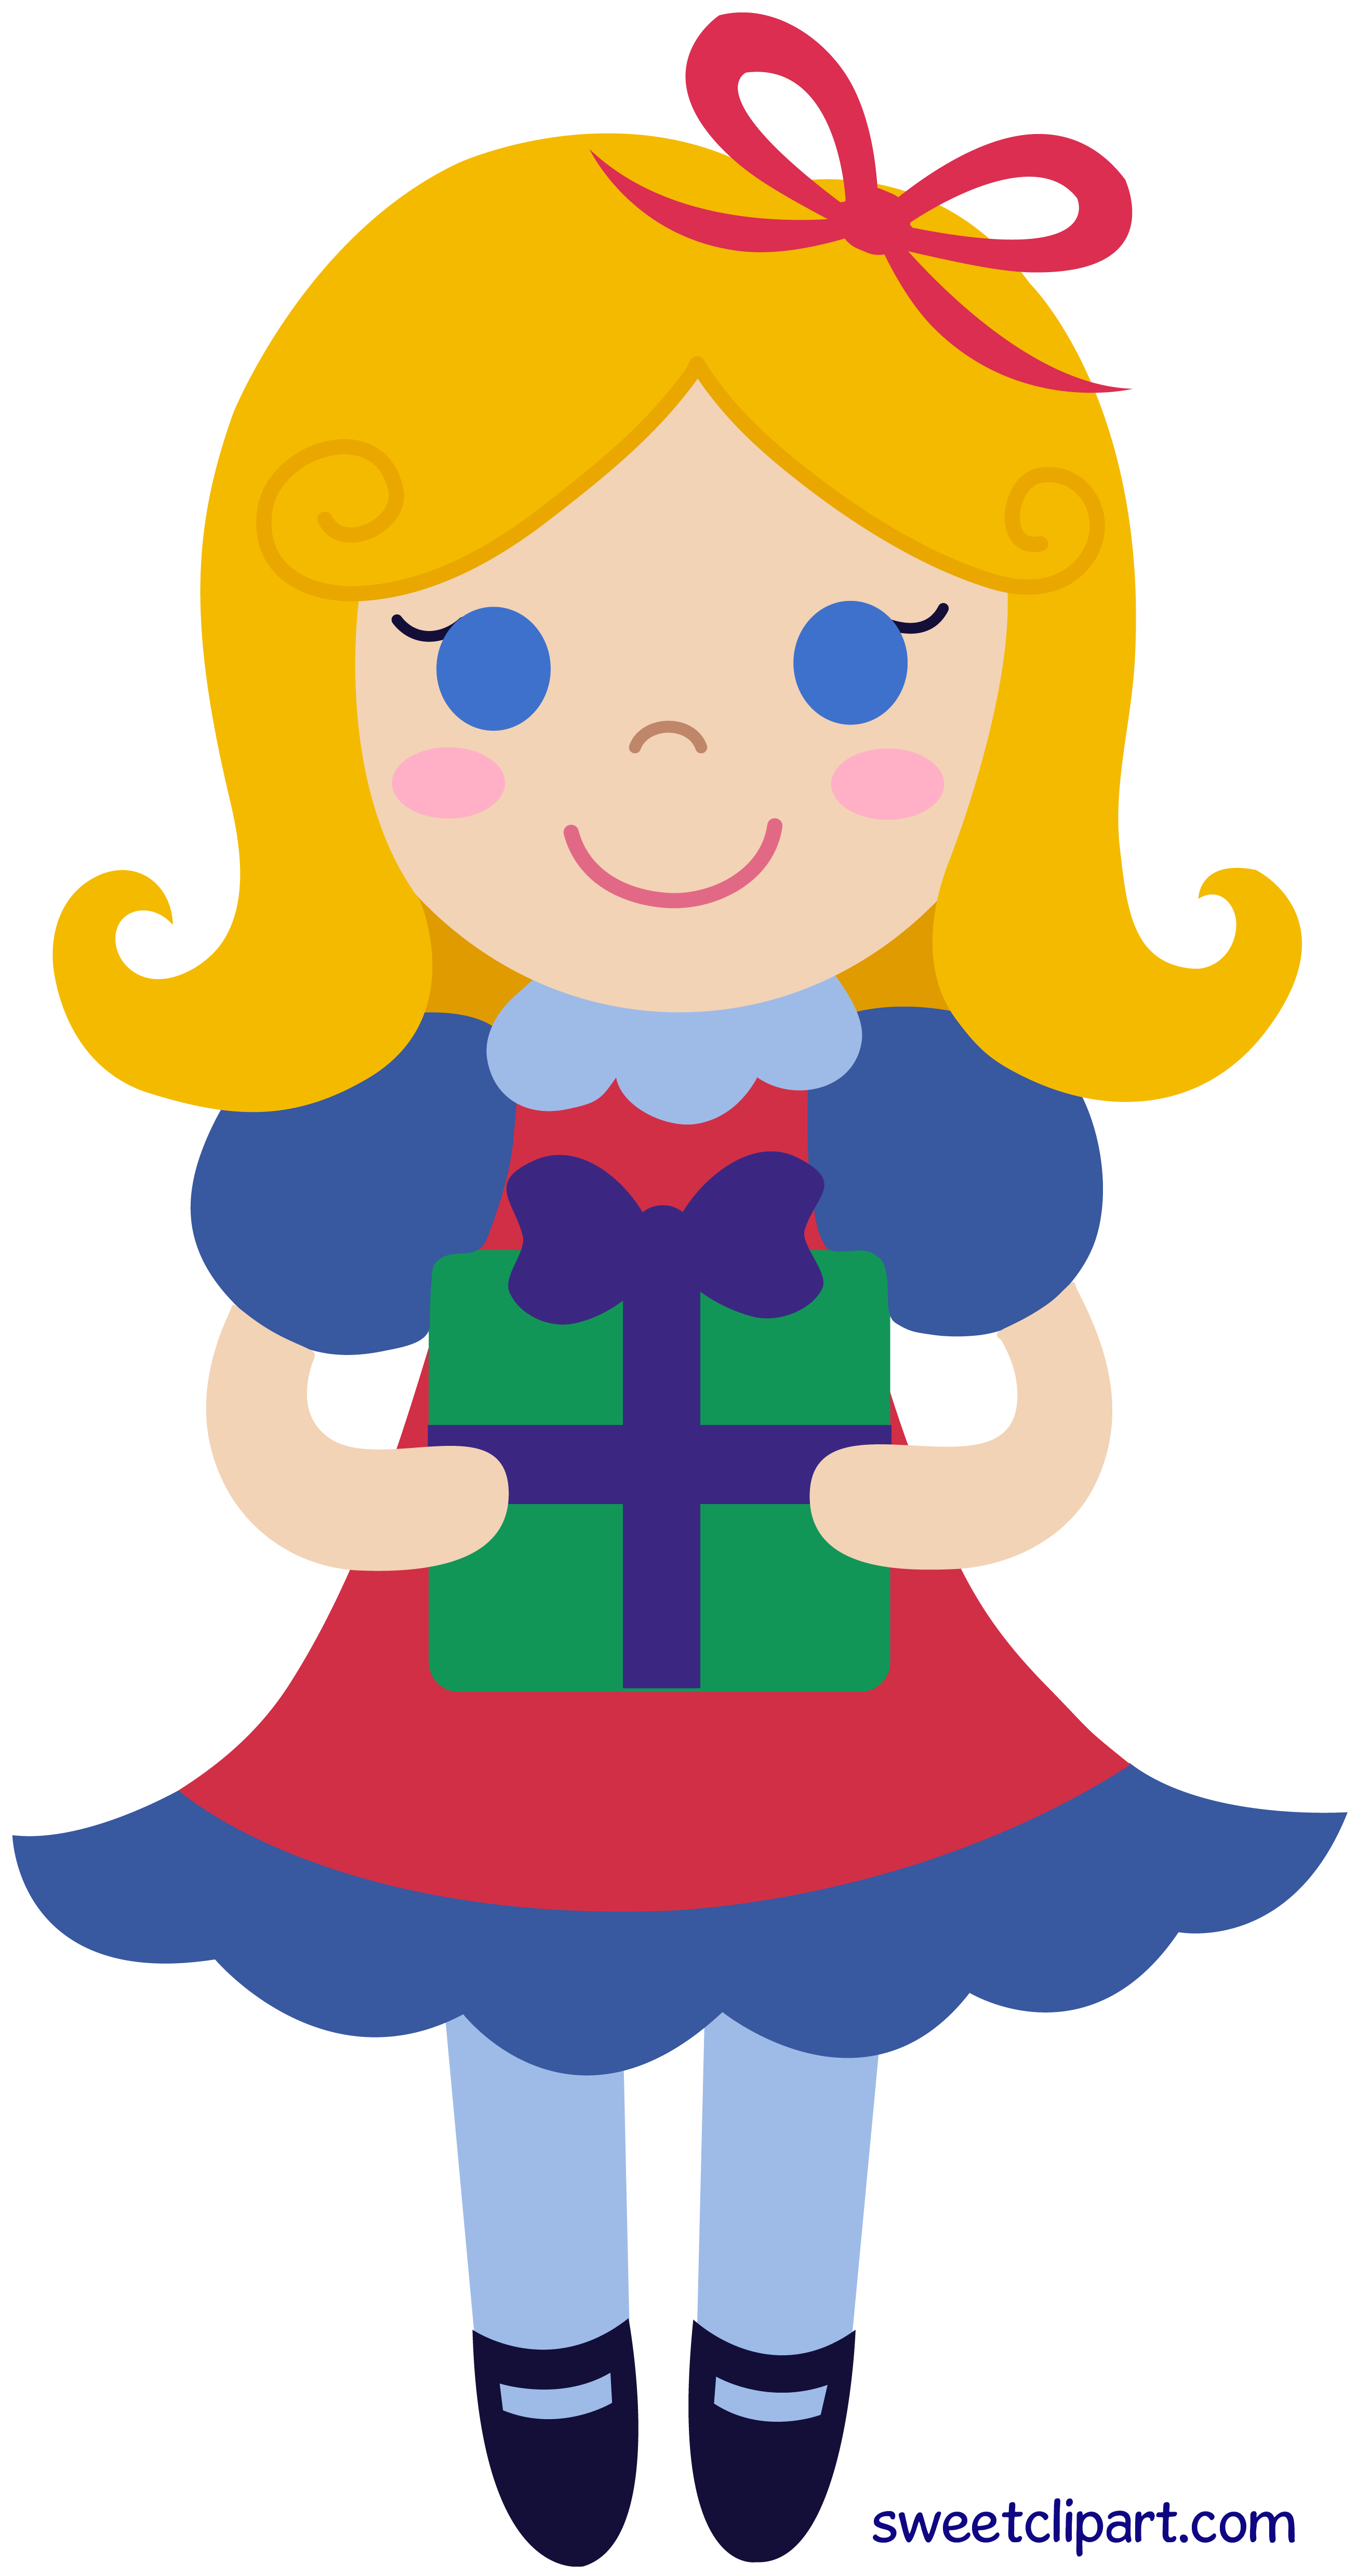 Cane clipart old geezer. Christmas girl holding gift